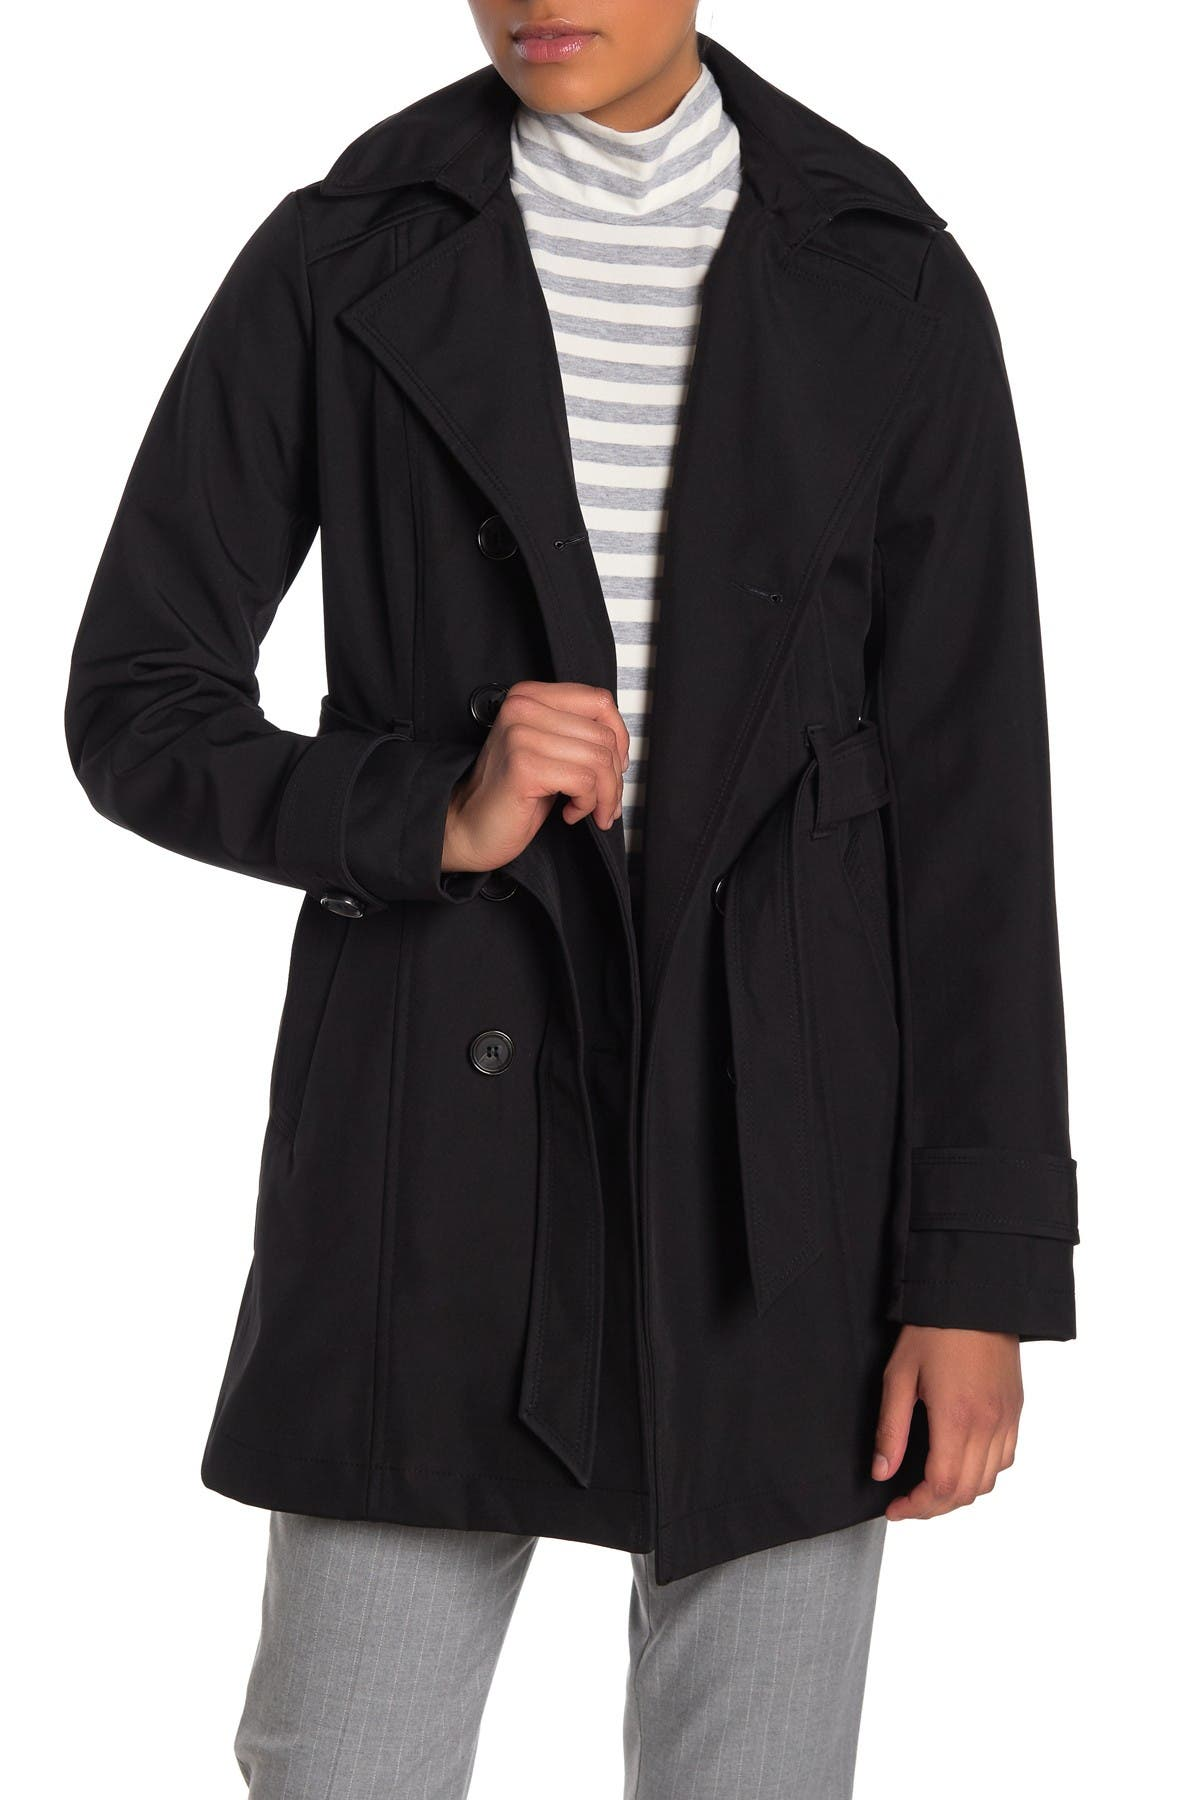 Image of Sebby Soft Shell Double Breast Water Resistant Trench Coat